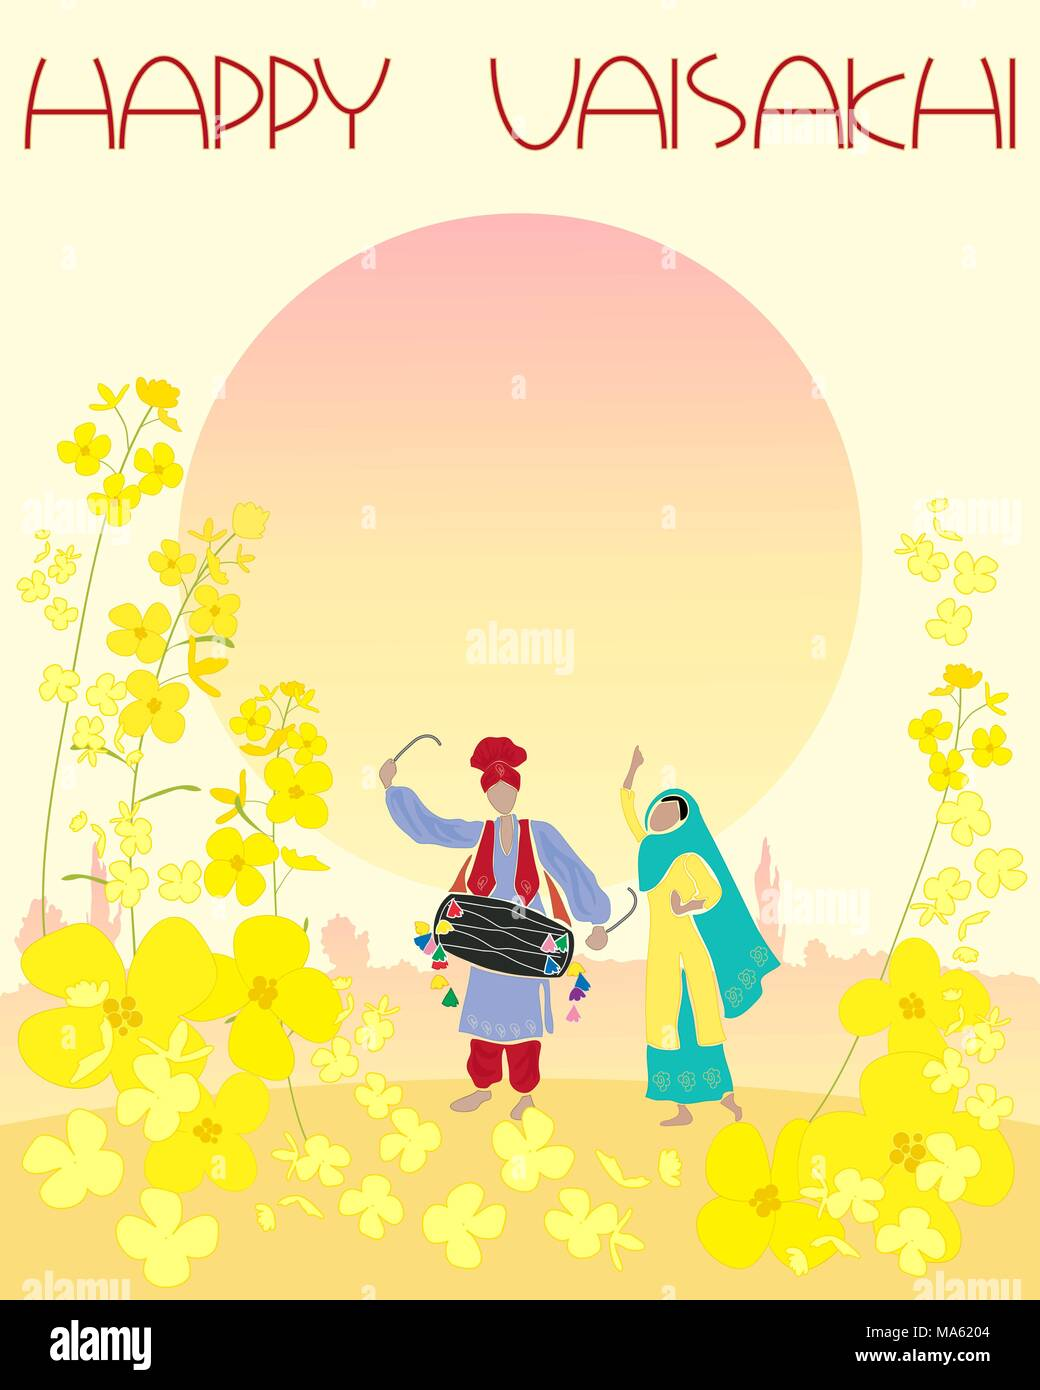 a vector illustration in eps 10 format of a happy Vaisakhi greeting card with mustard flowers and Punjabi dancers under a setting sun - Stock Vector